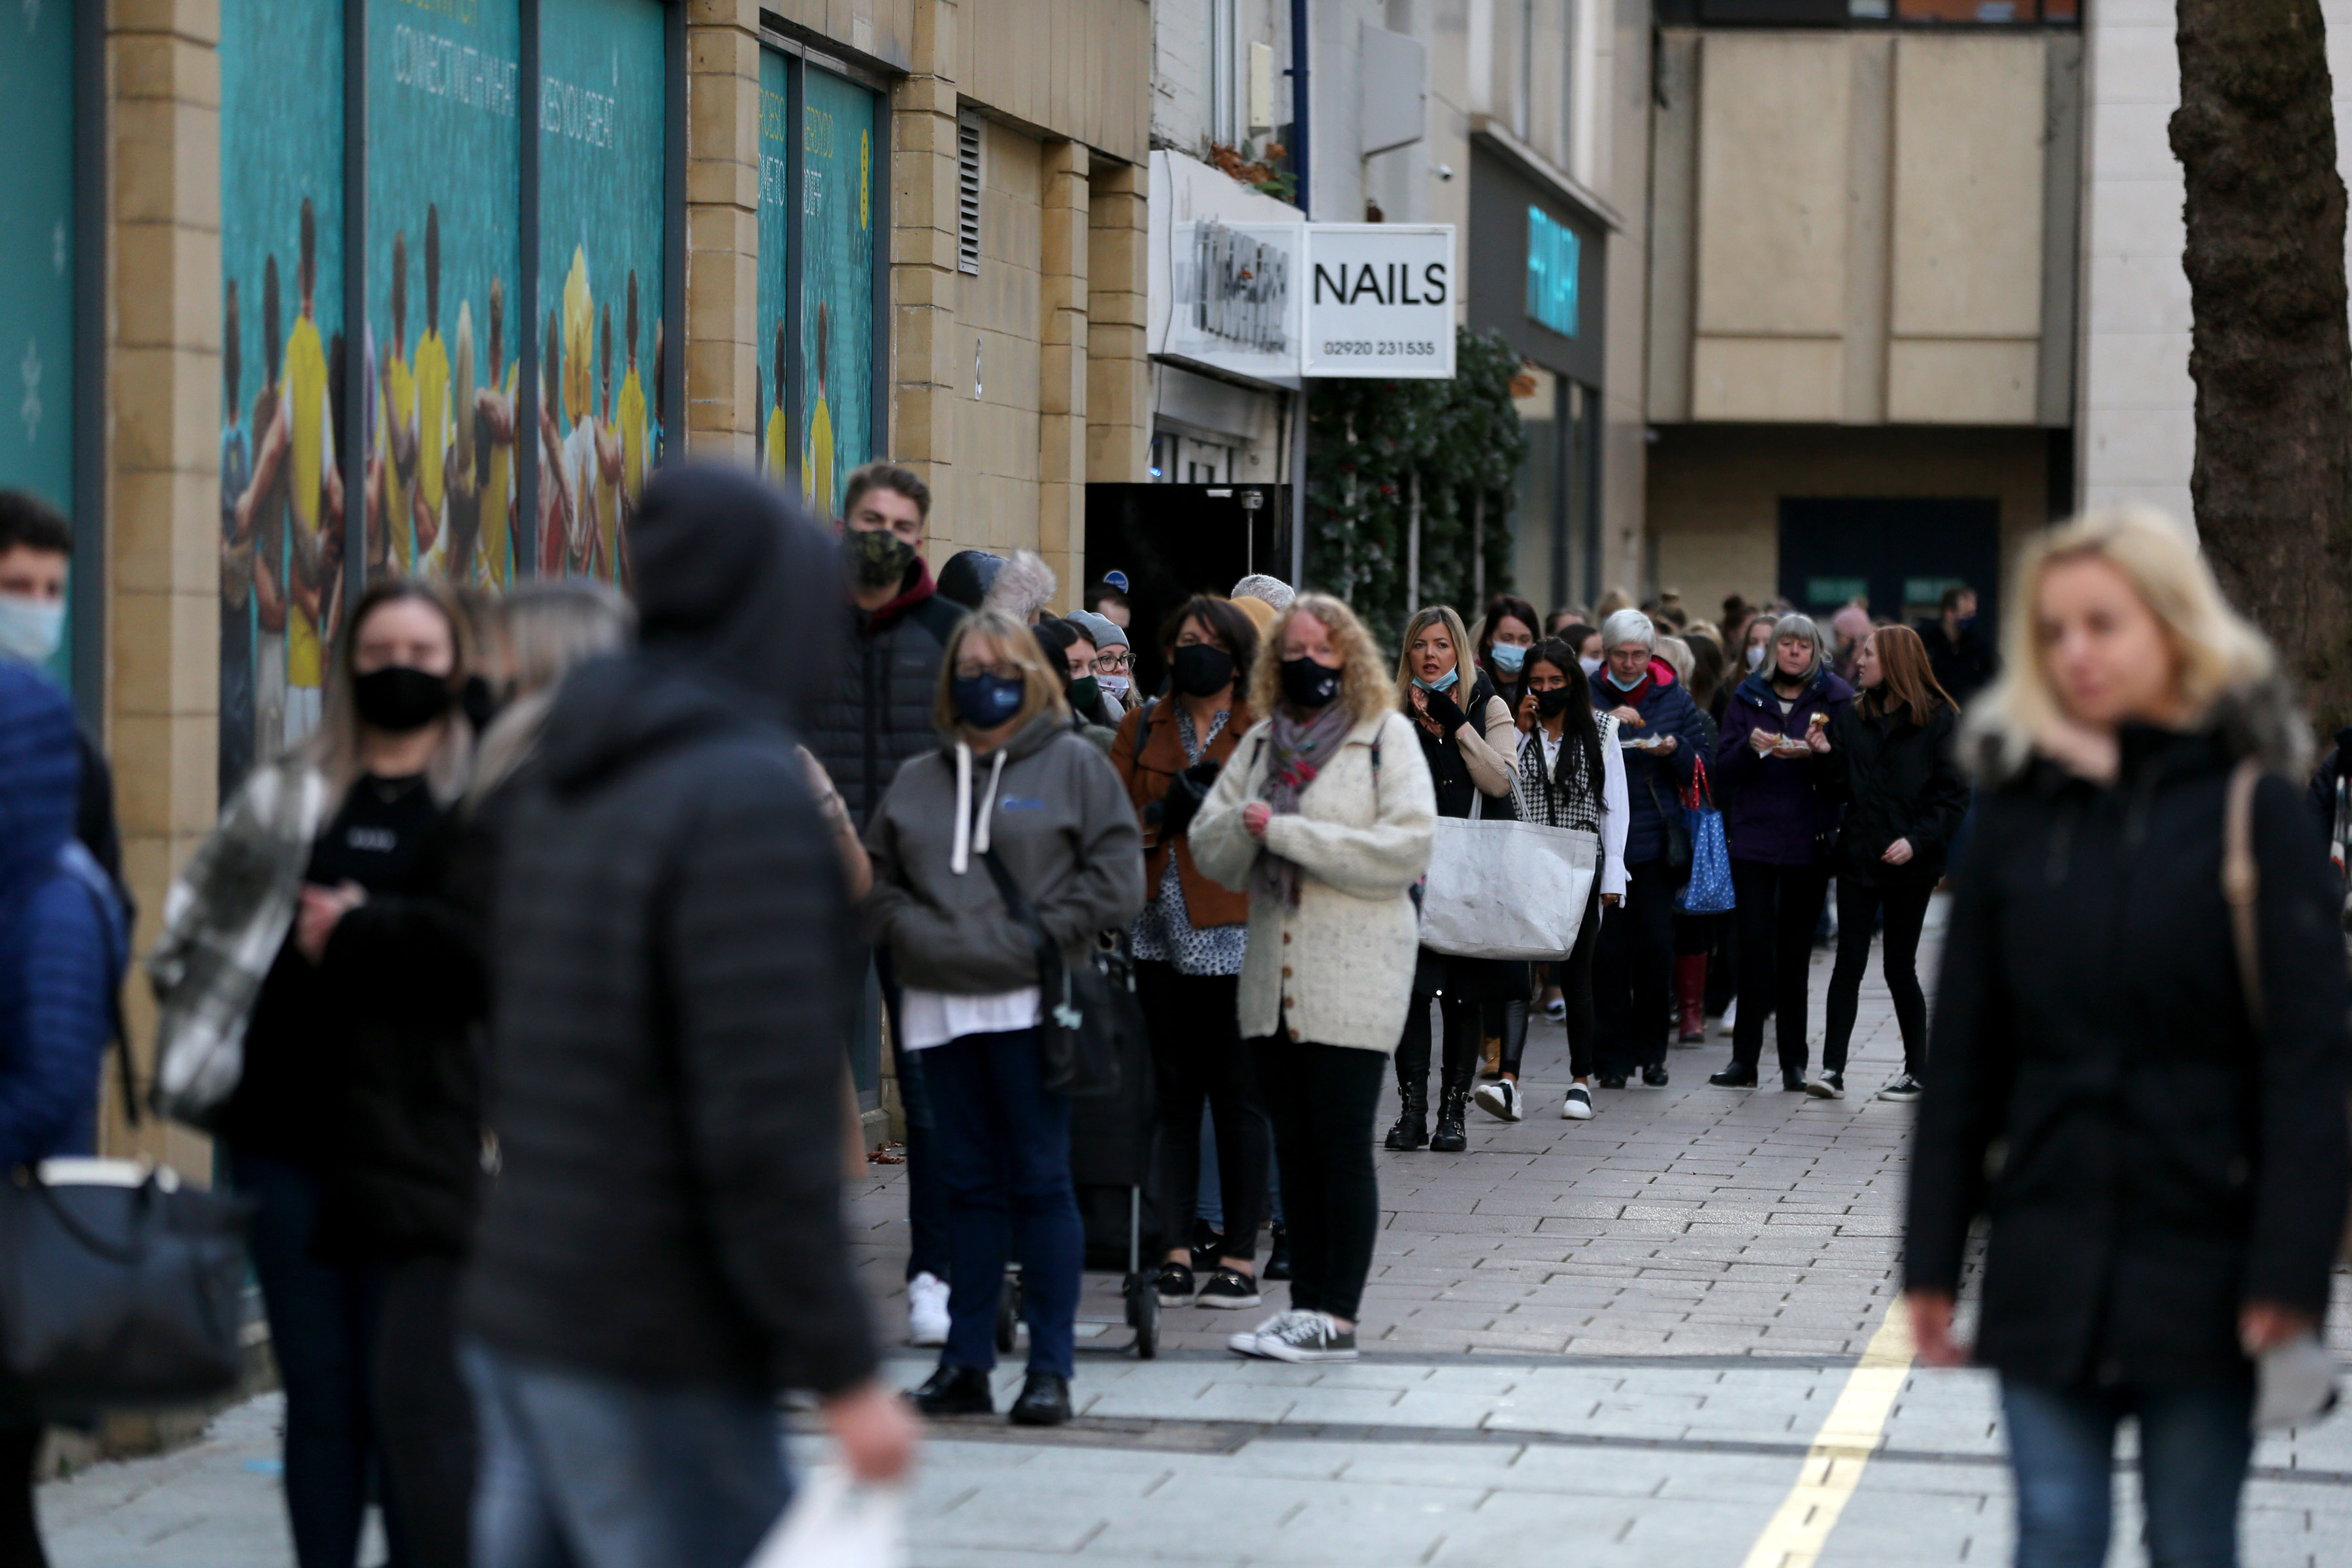 Shoppers were queuing outside Primark in Cardiff today